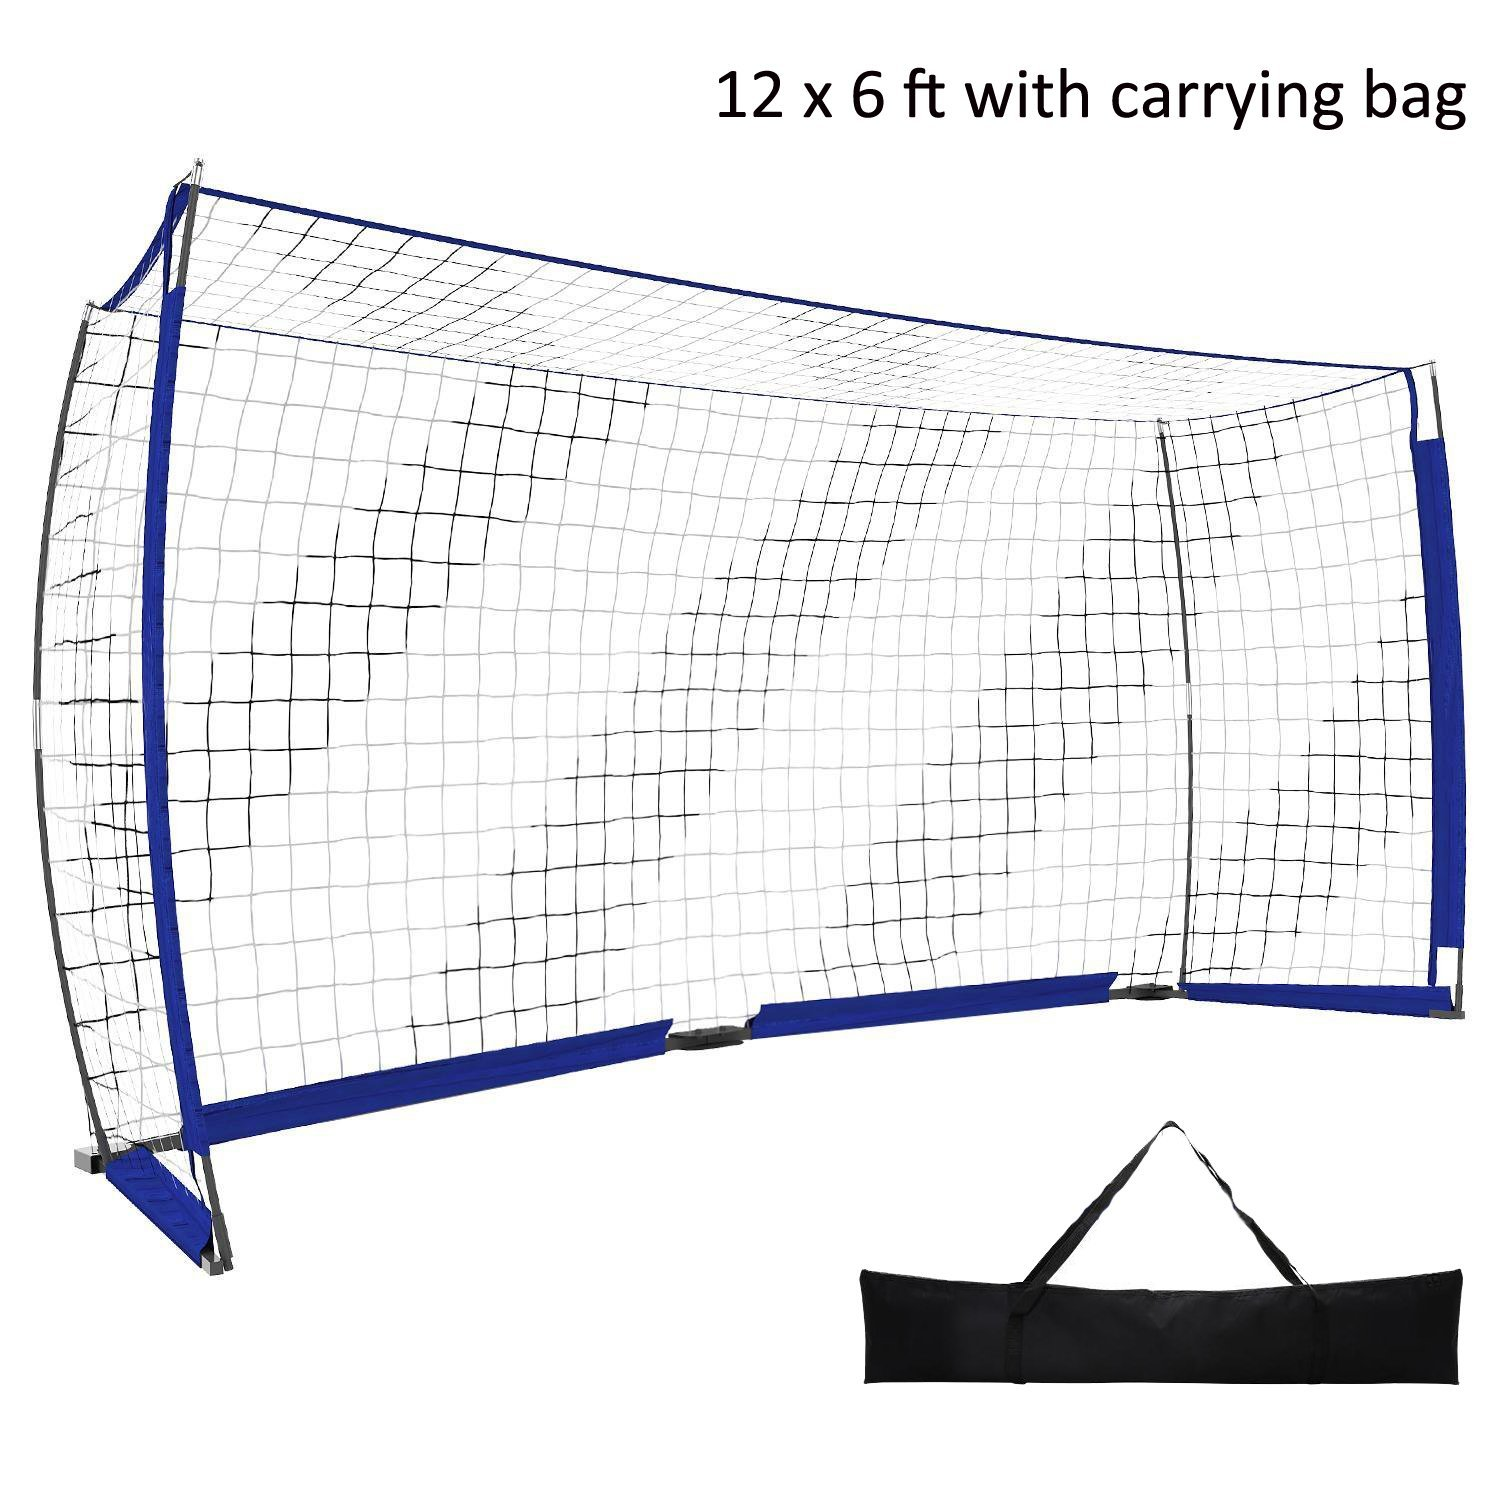 benletポータブルSoccer Football Goal Net with Bowフレームクイックセットアップ( Available in 12 x 6 ft、6 x 4 ft ) [米国ストック] B07BT2W82T 12 x 6 ft -Blue 12 x 6 ft -Blue